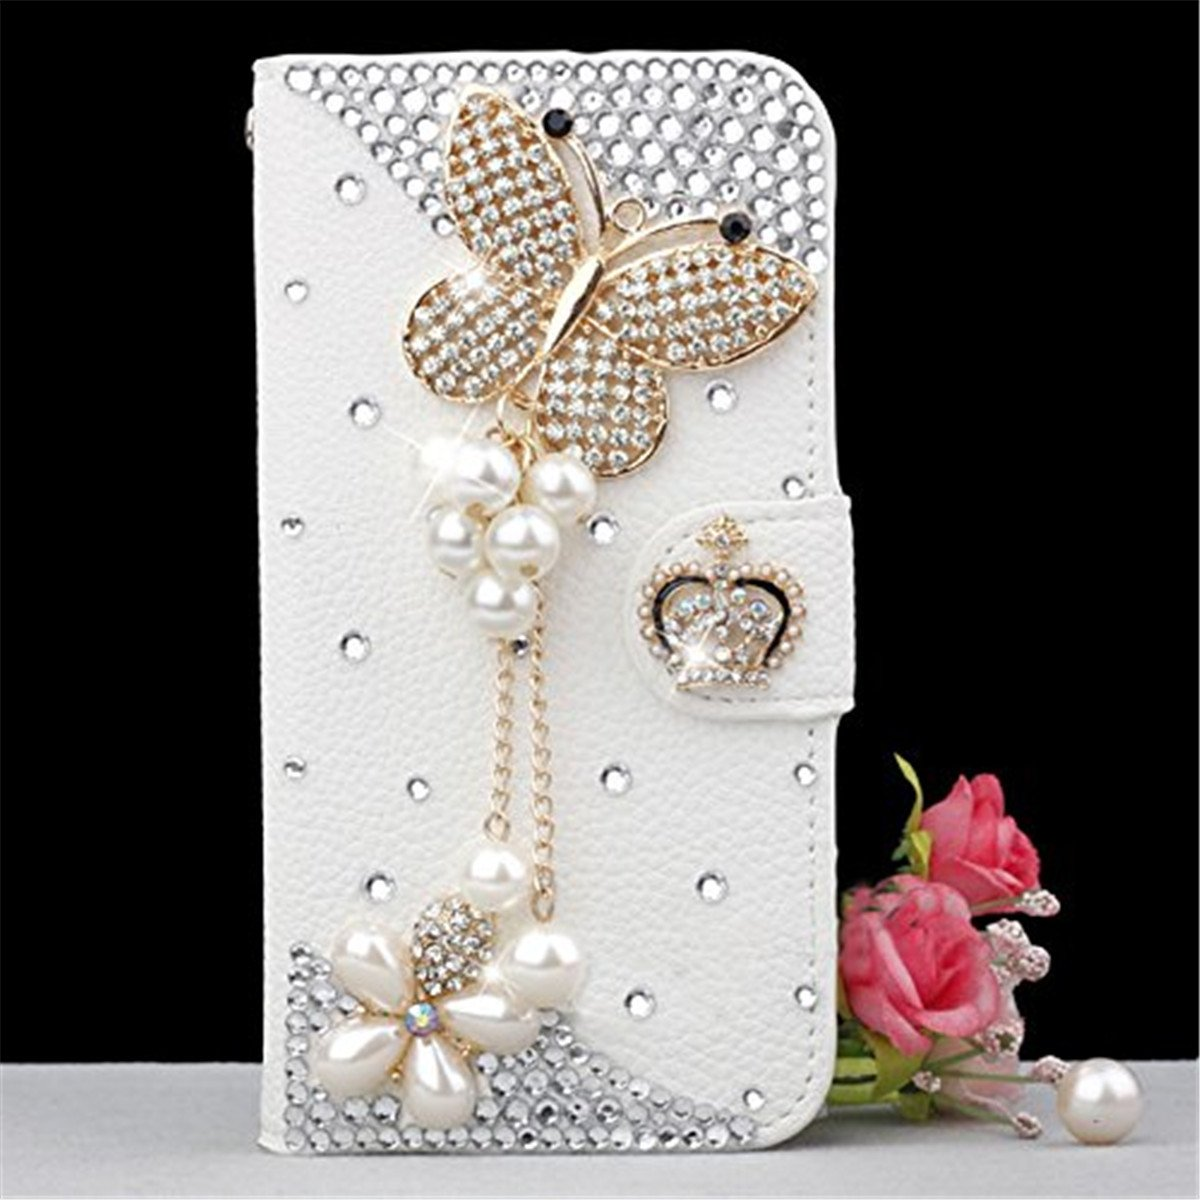 adorehouse Huawei Y5 2018 Coque Etui Flip Paillette Brillante Bling Glitter Luxe 3D Cristal Sparkle Strass Case de Protection PU Holster Cuir Portefeuille Anti Choc Porte-carte Housse